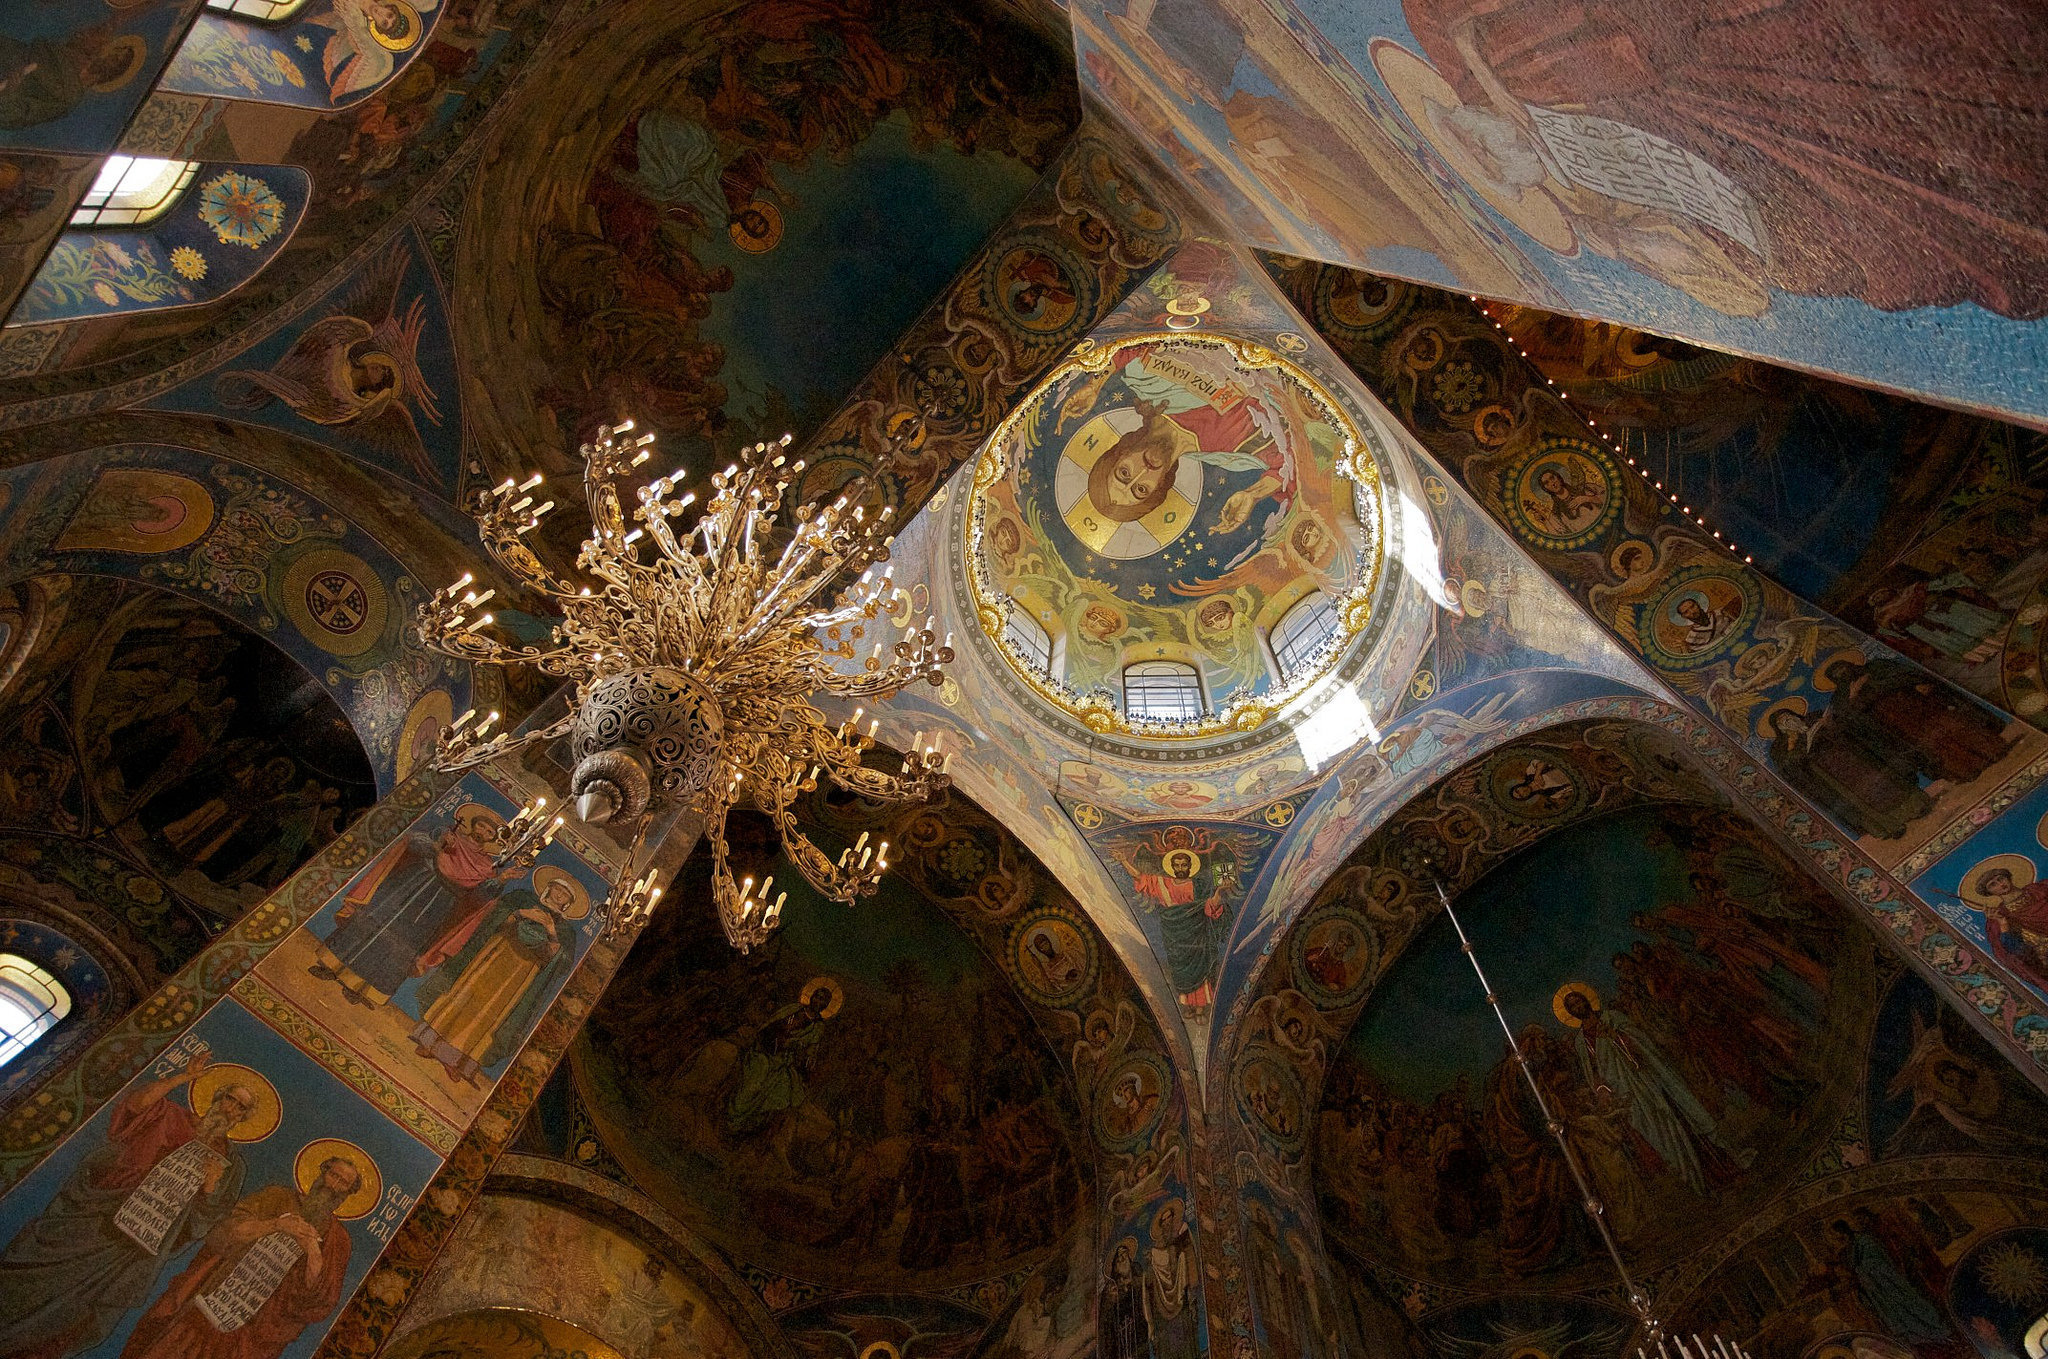 Ceiling of the Church of the Saviour on Spilled Blood